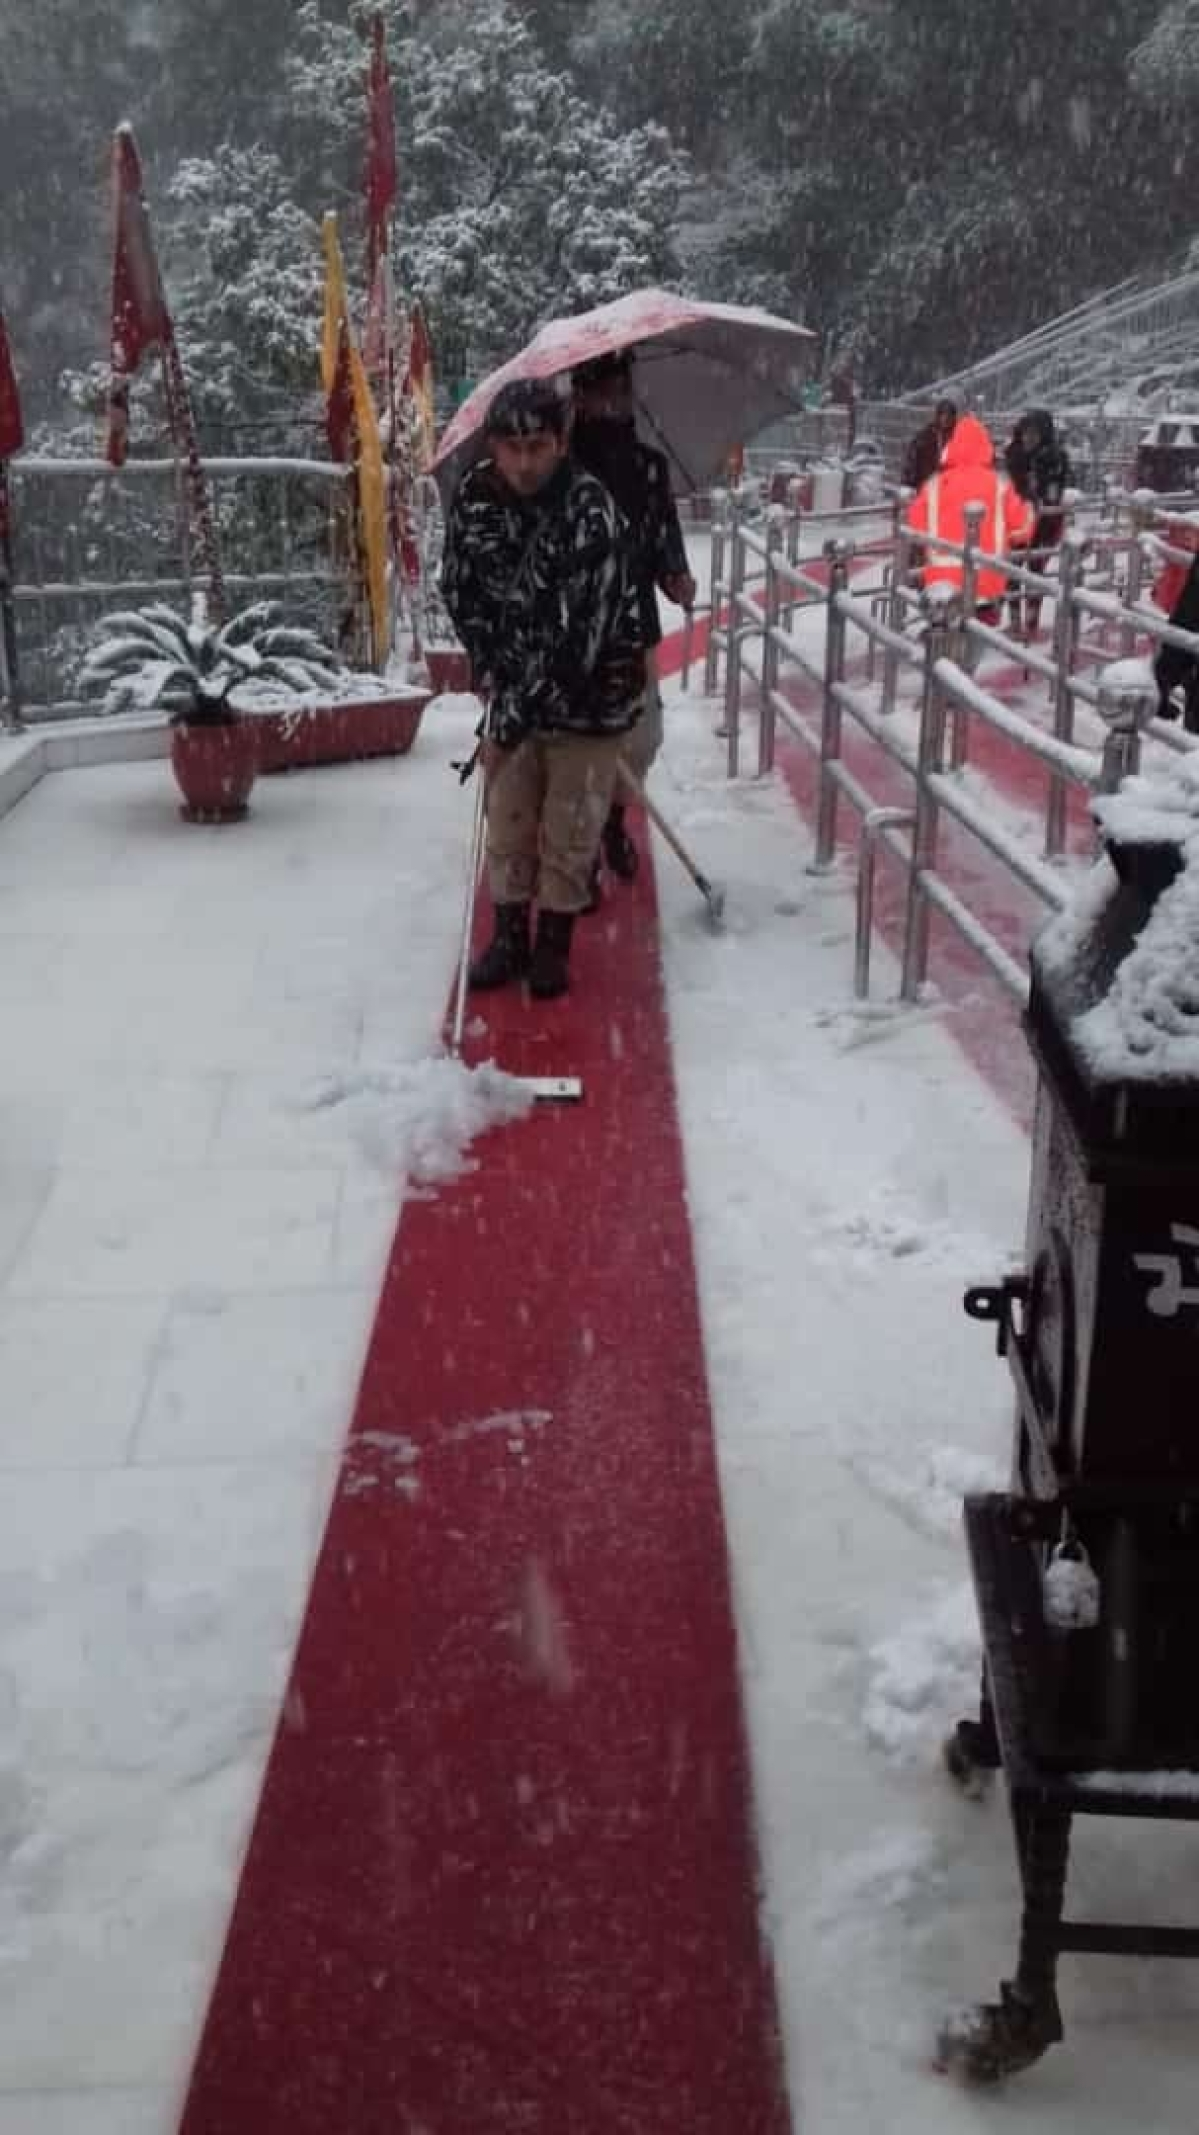 A security personnel tries to move the snow off the path to the temple in Katra.